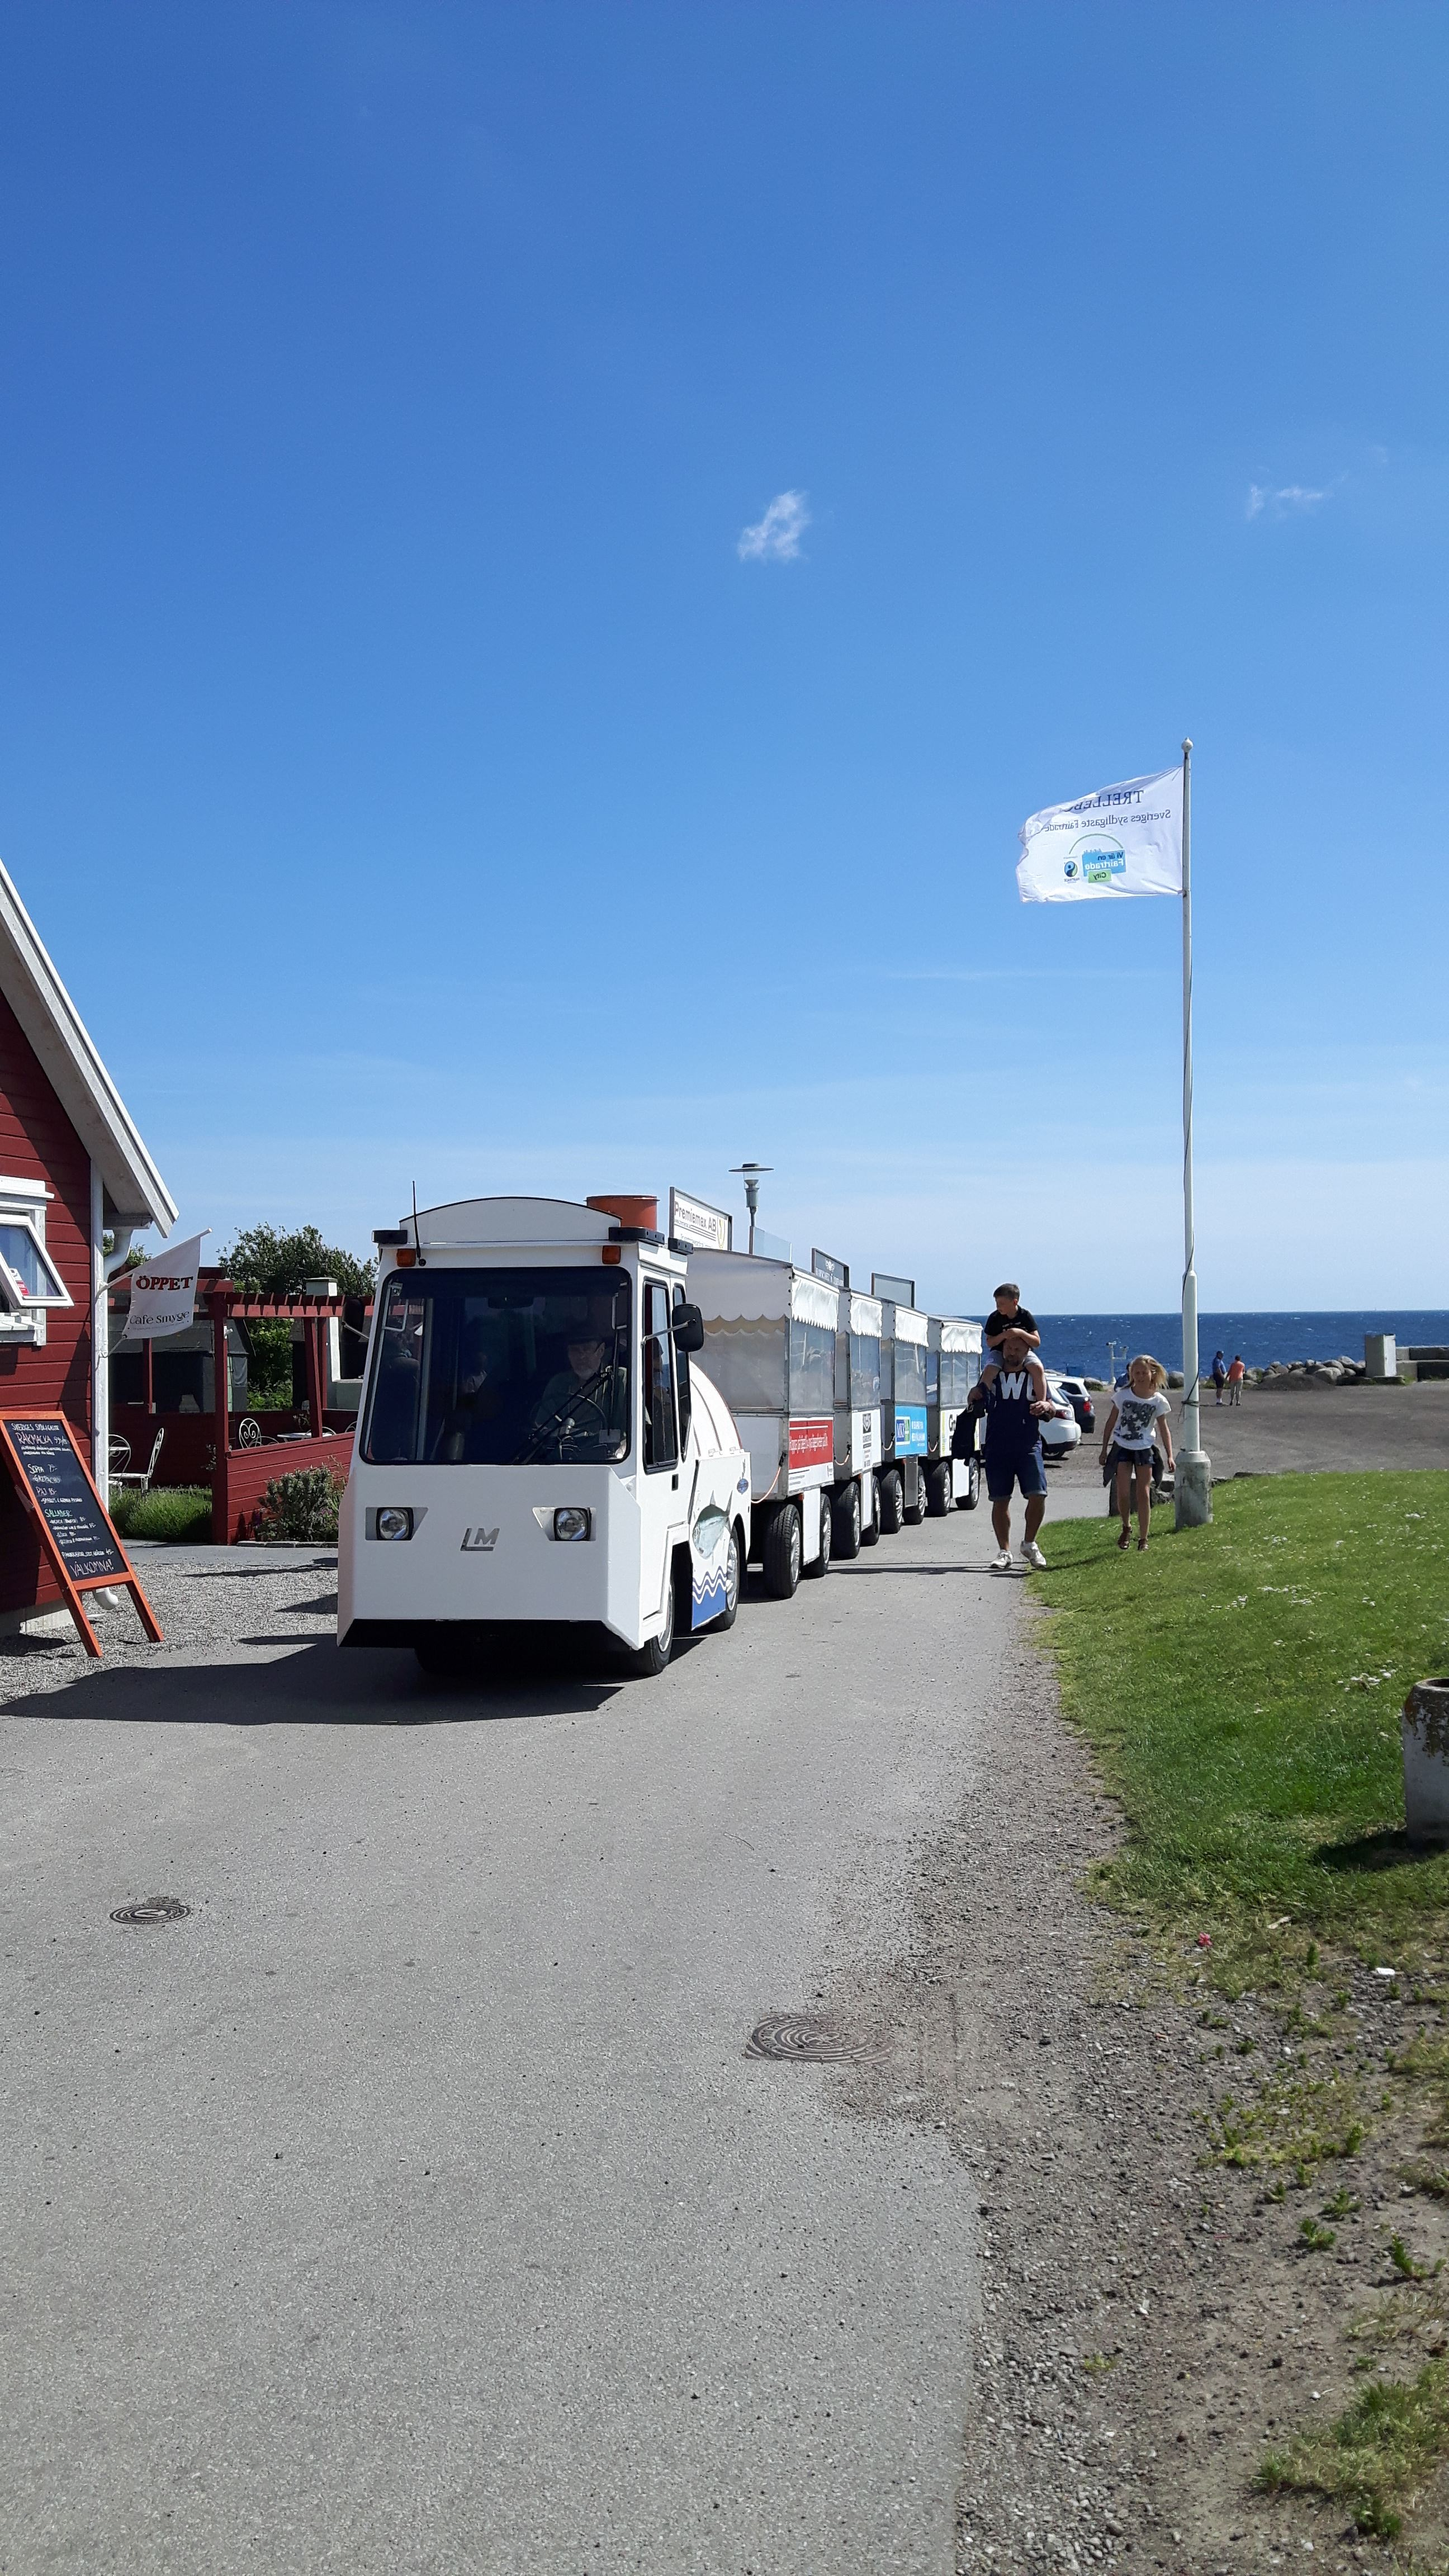 Sightseeing with Smyge expressen